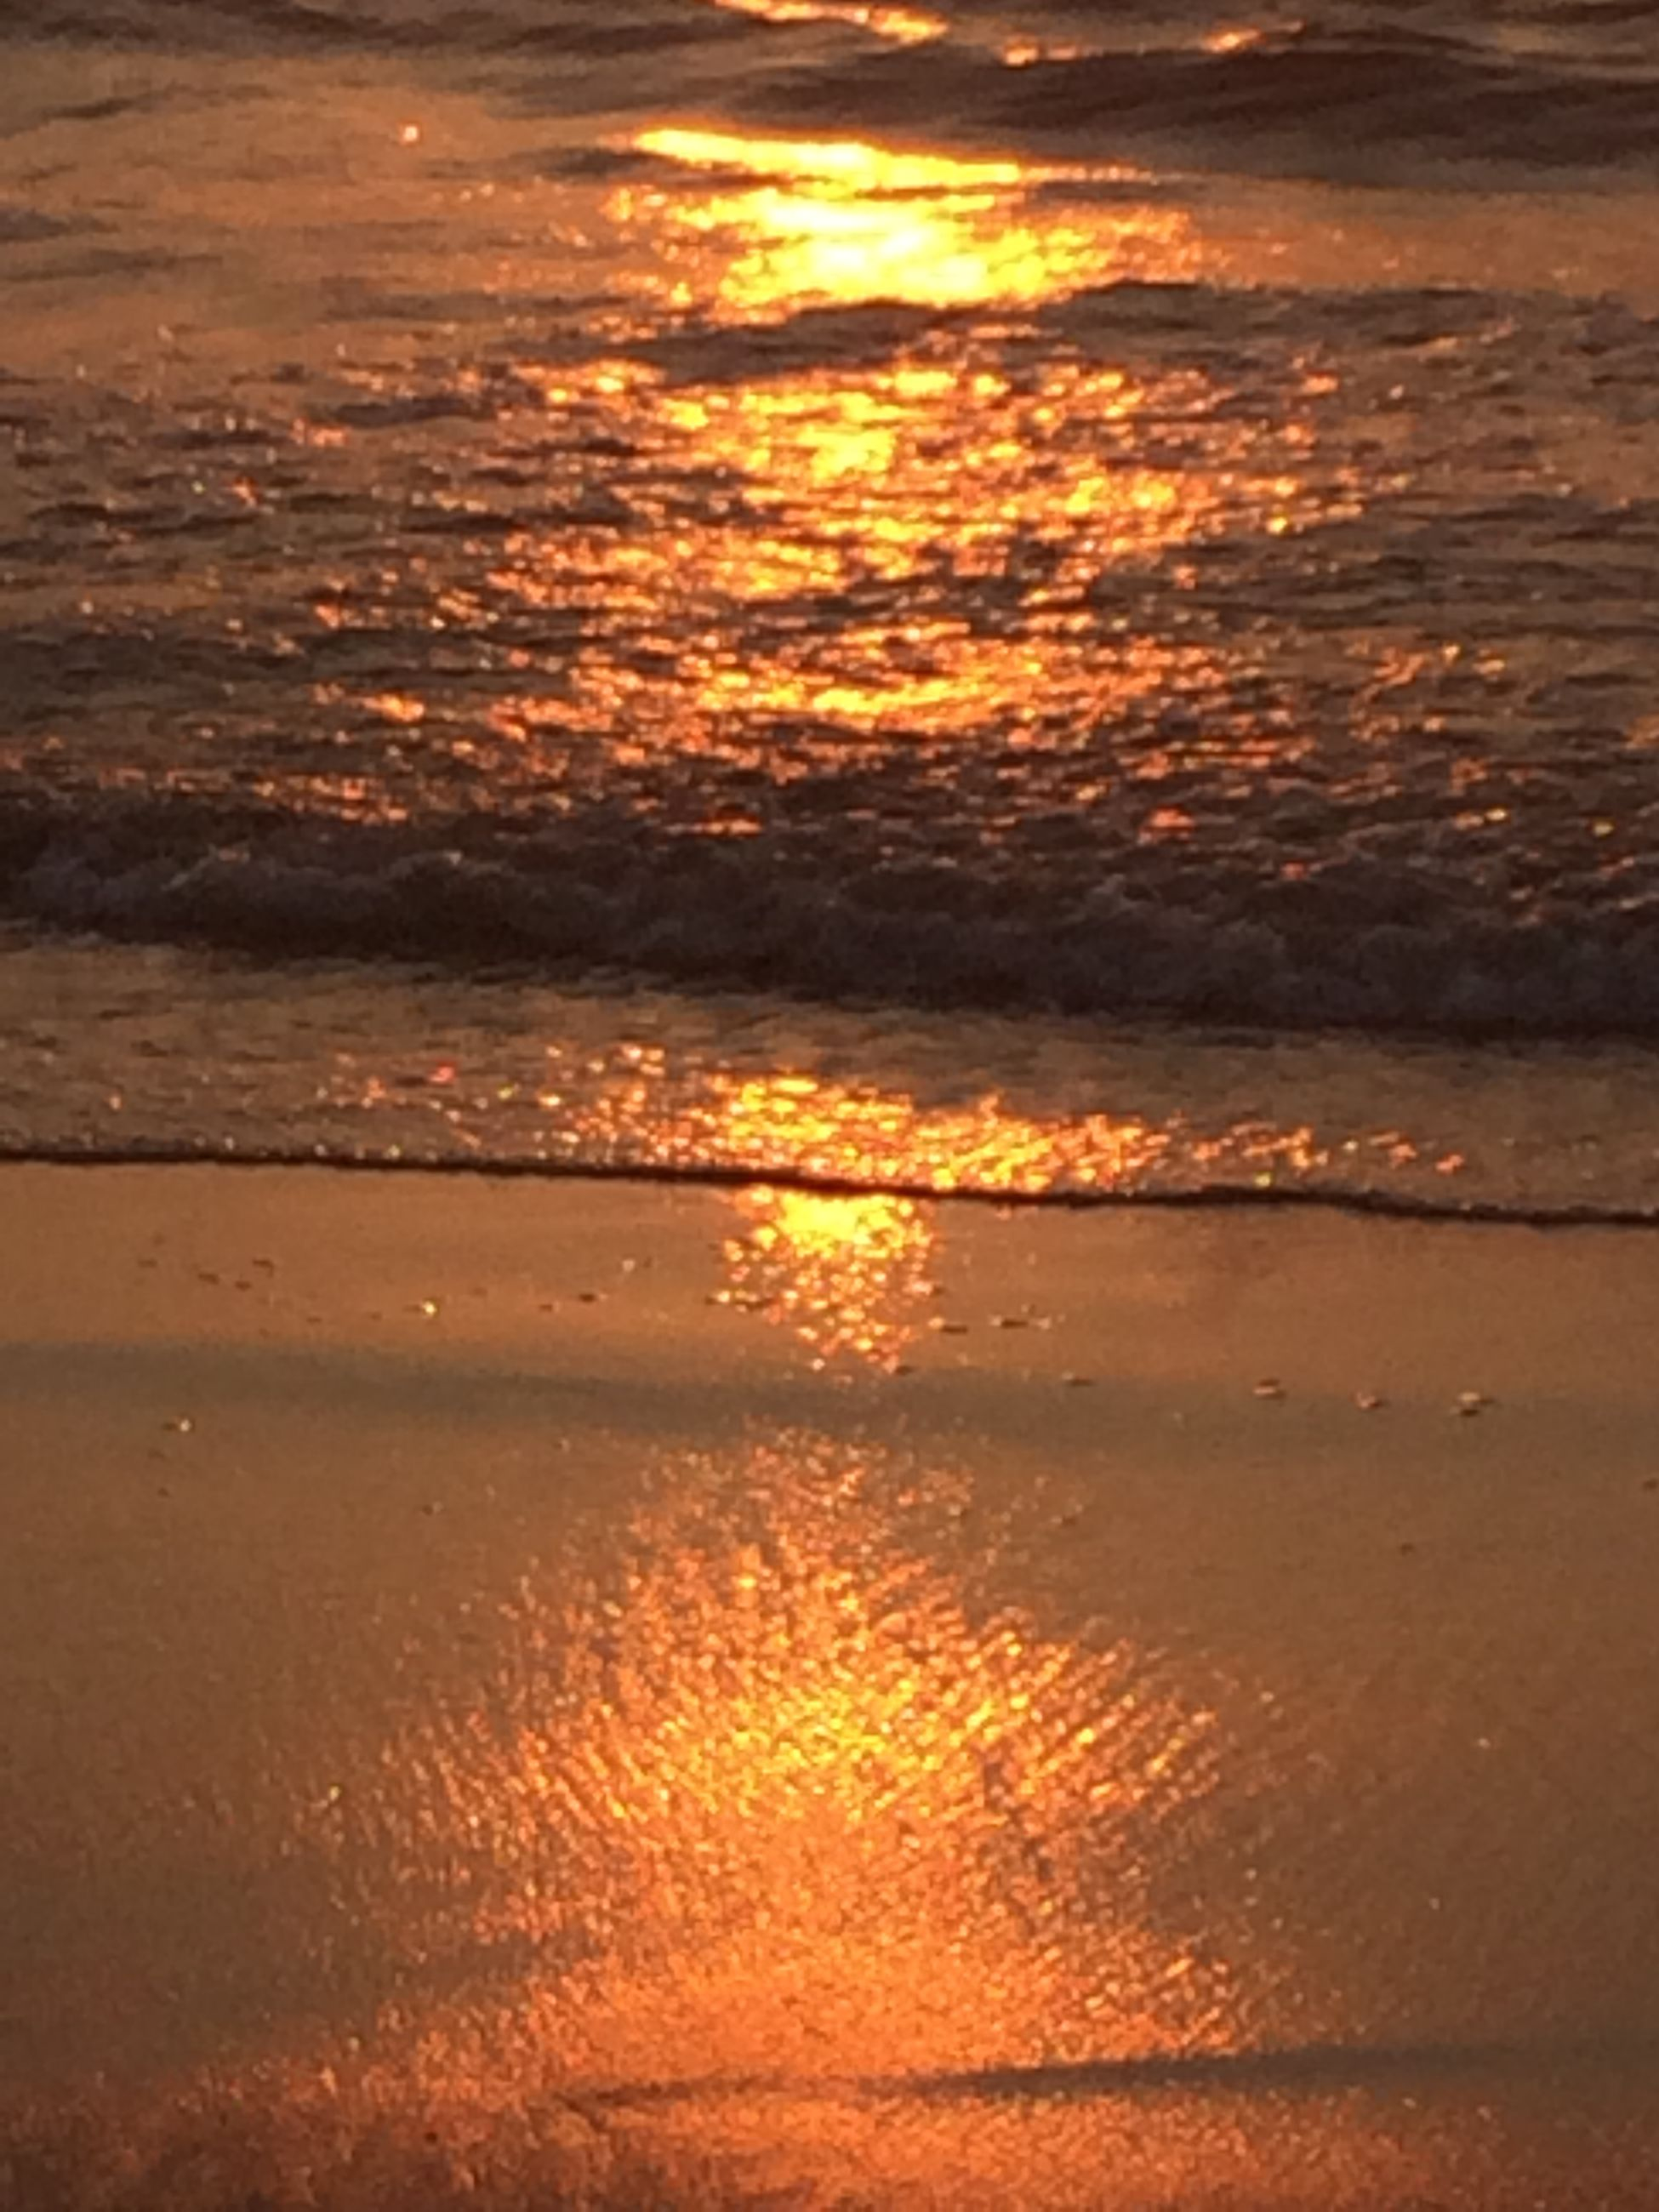 water, sunset, sea, beach, orange color, reflection, scenics, beauty in nature, tranquil scene, tranquility, nature, horizon over water, shore, sand, idyllic, sunlight, outdoors, rippled, sky, wet